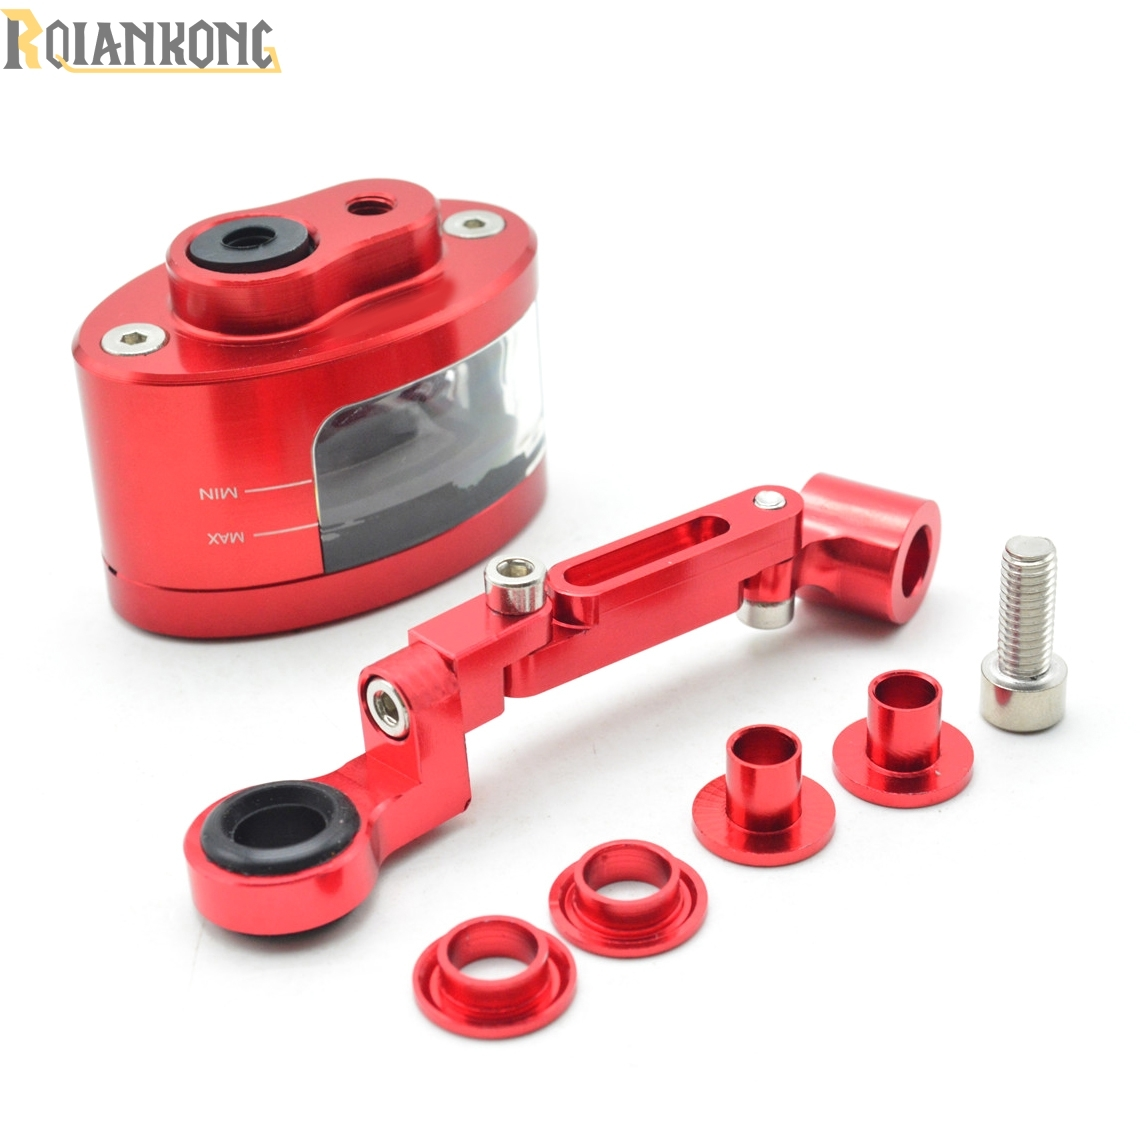 Hot!!New! Motorcycle Brake Fluid Reservoir Oil Tank have mounting kit For Yamaha YZF R1/R125/R15/R1M/R25/R3/R6 hot new motorcycle brake fluid reservoir oil tank have mounting kit for ducati hypermotard 1100 796 821 939 evo s sp strada